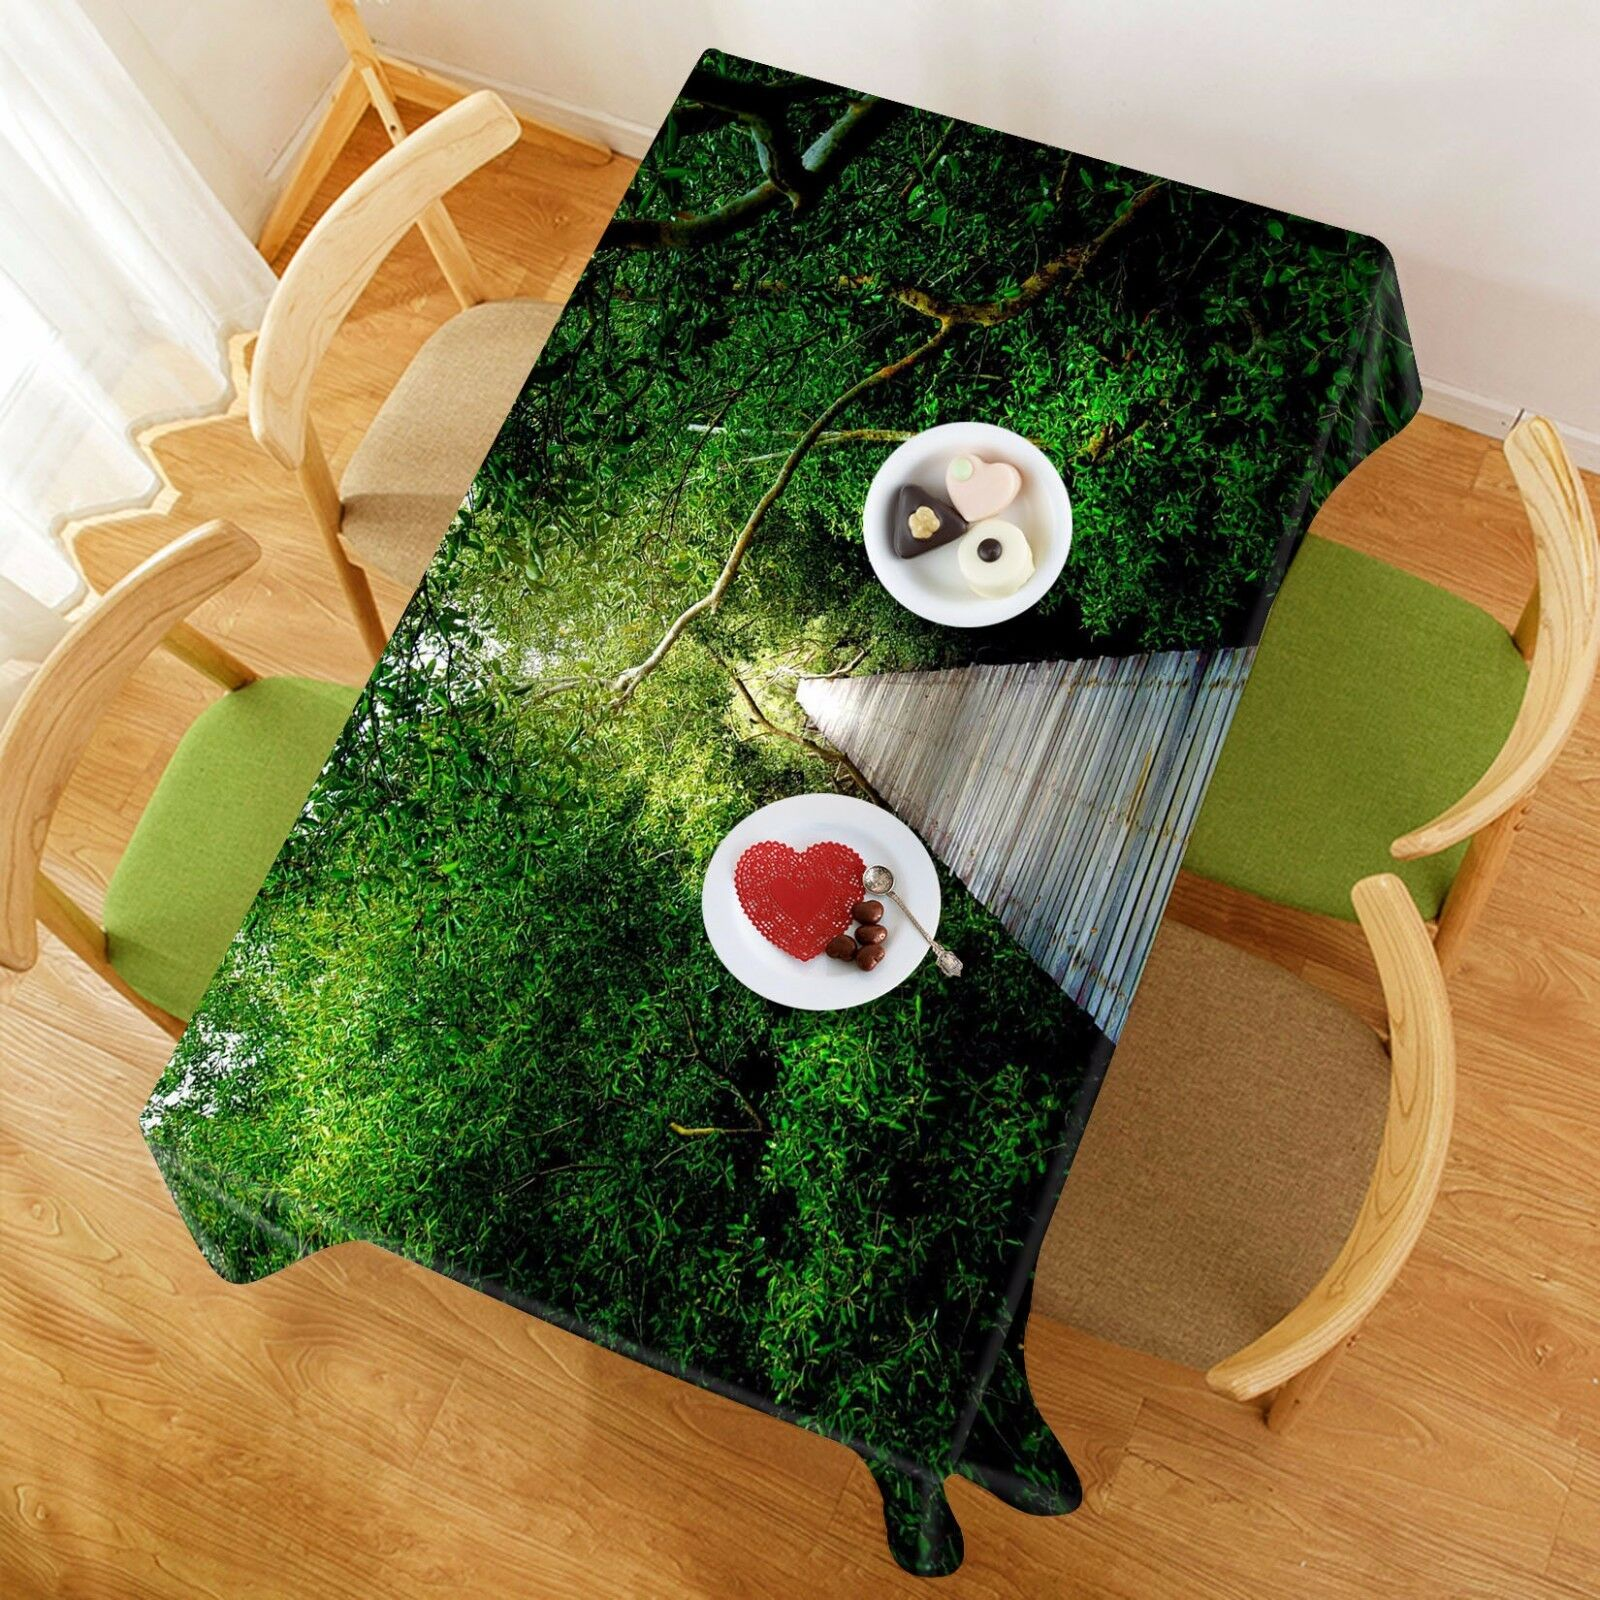 3D Wood Wood Wood Road 235 Tablecloth Table Cover Cloth Birthday Party Event AJ WALLPAPER 9b0a5d